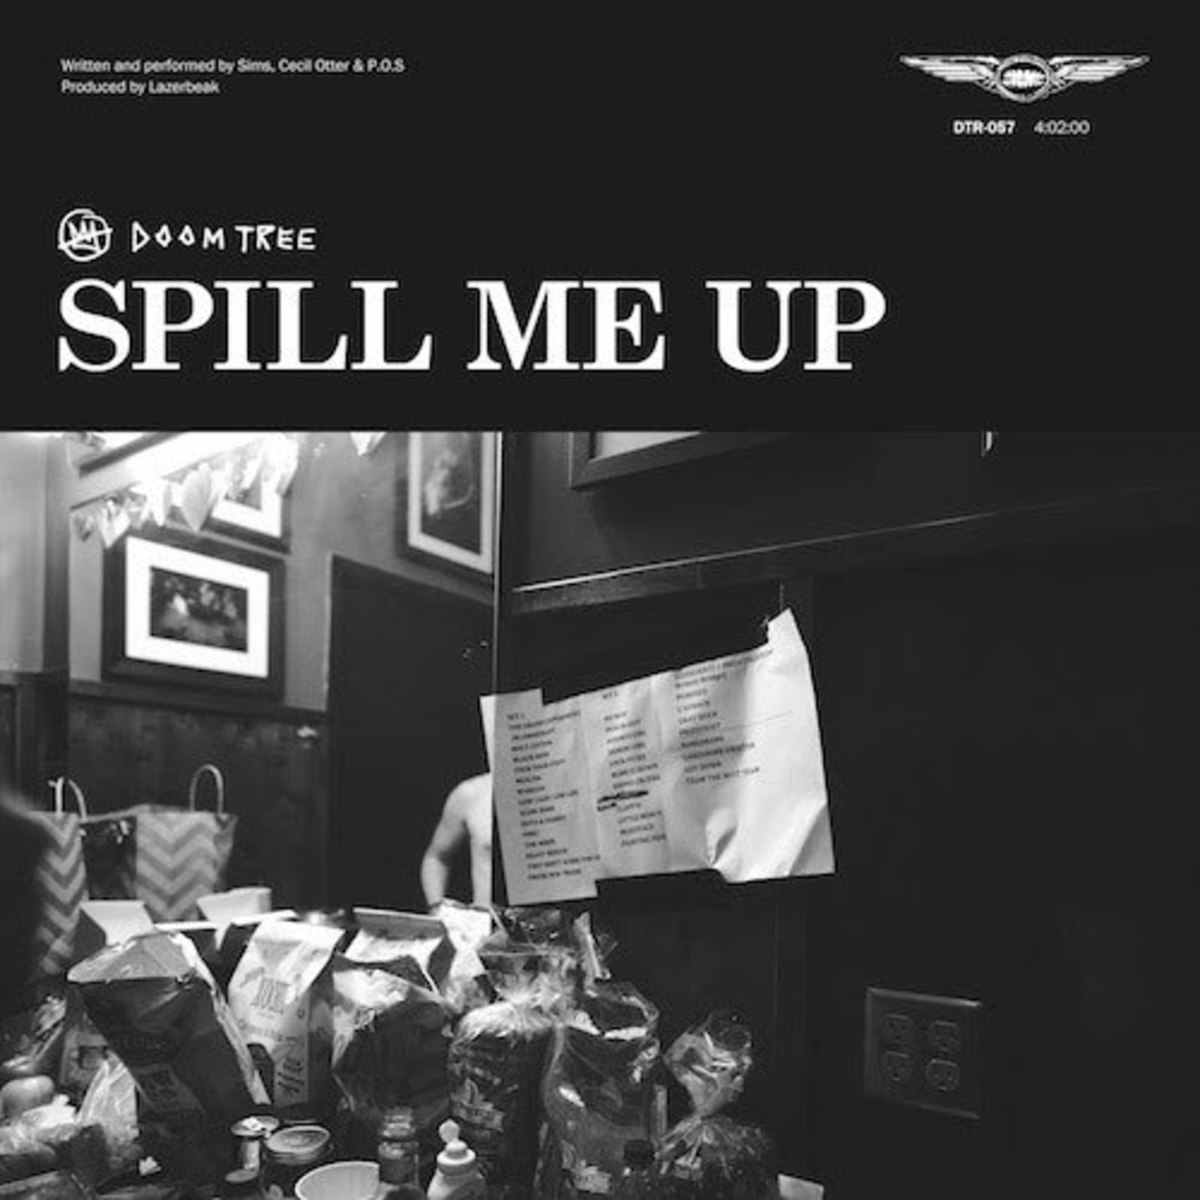 doomtree-spill-me-up.jpg